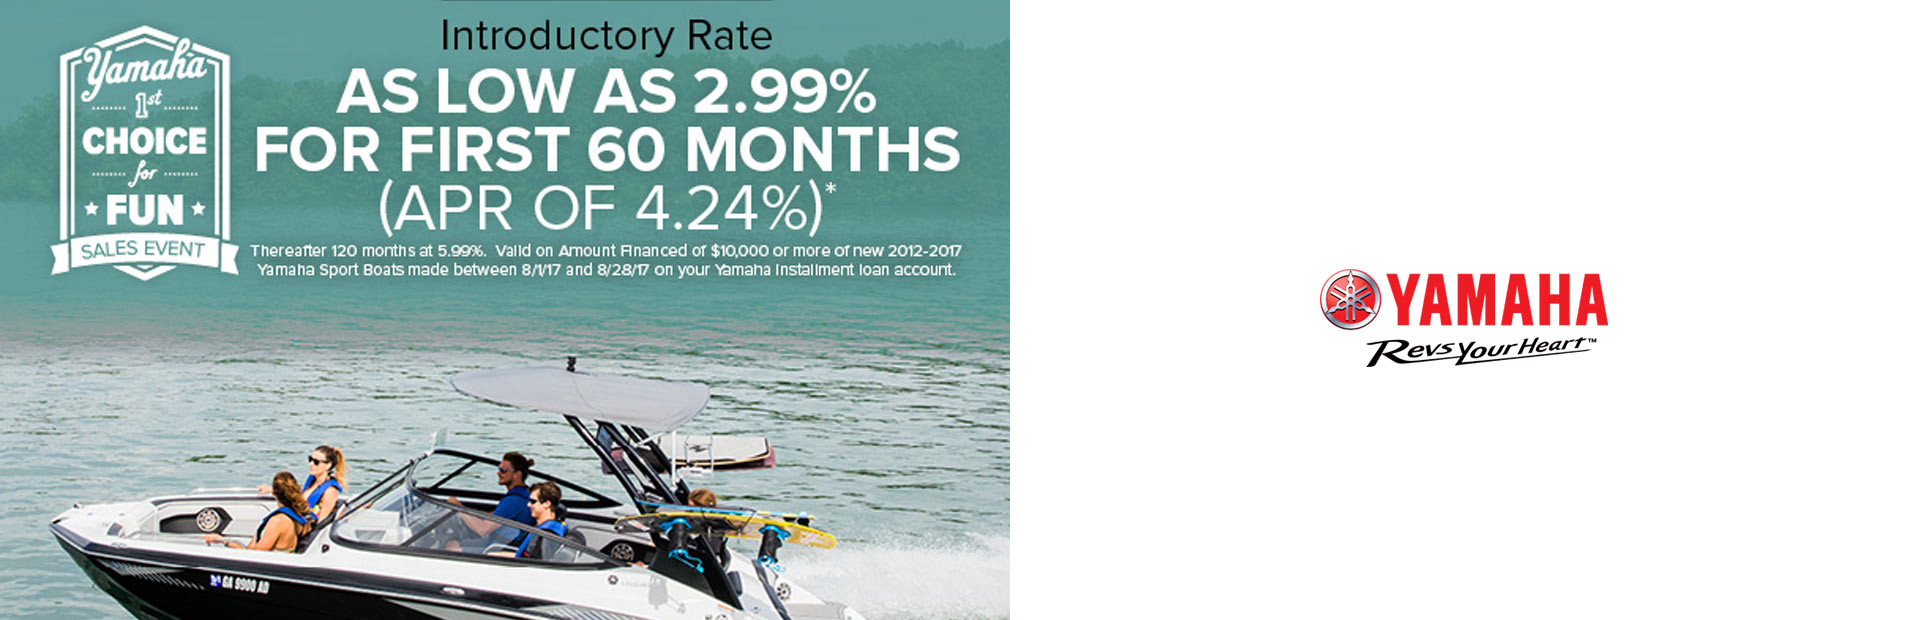 Yamaha: As Low As 2.99% For First 60 Months